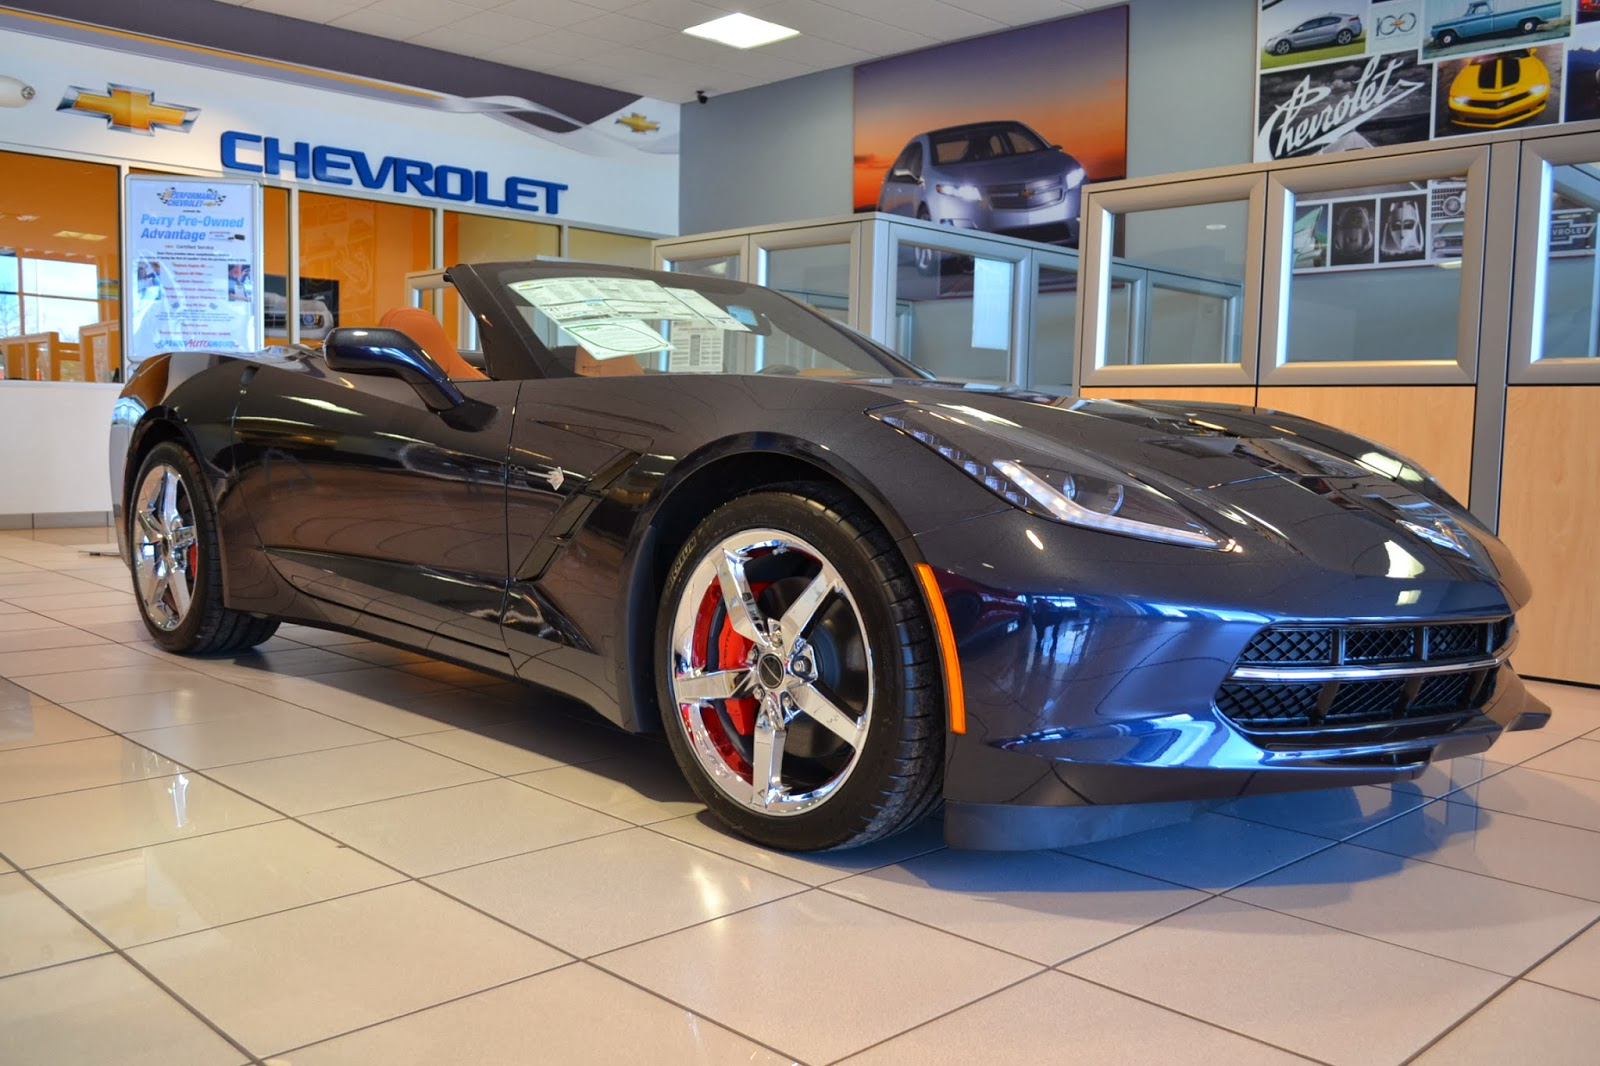 2014 Corvette Stingray For Sale >> Perry Auto Group 2014 Chevrolet Corvette Stingray For Sale